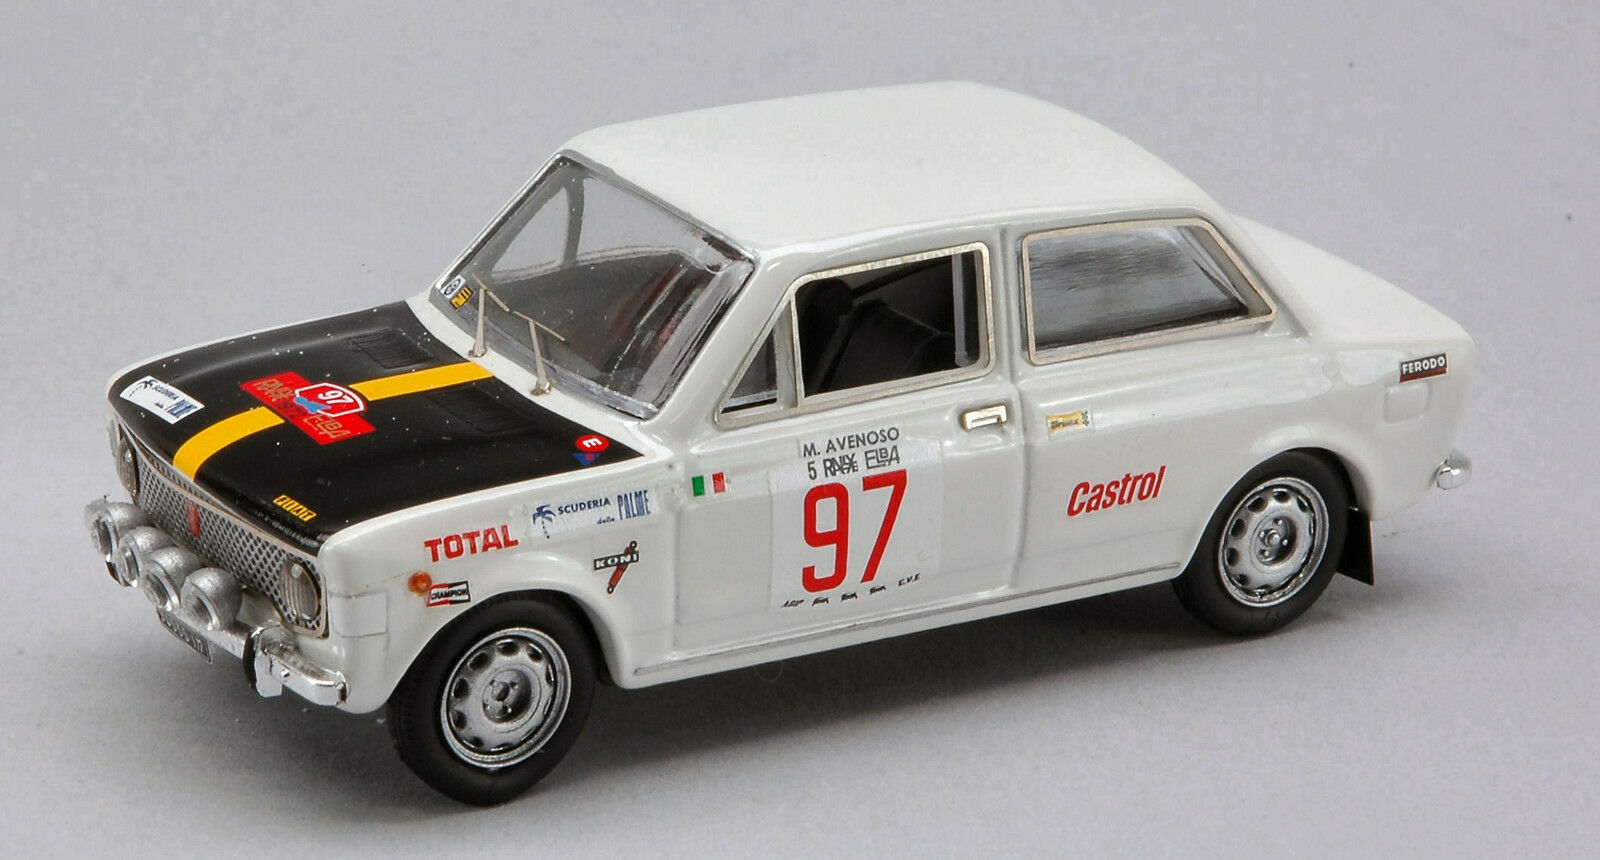 FIAT 128  97 rally Elba 1972 1 43 MODEL rio4228 rio